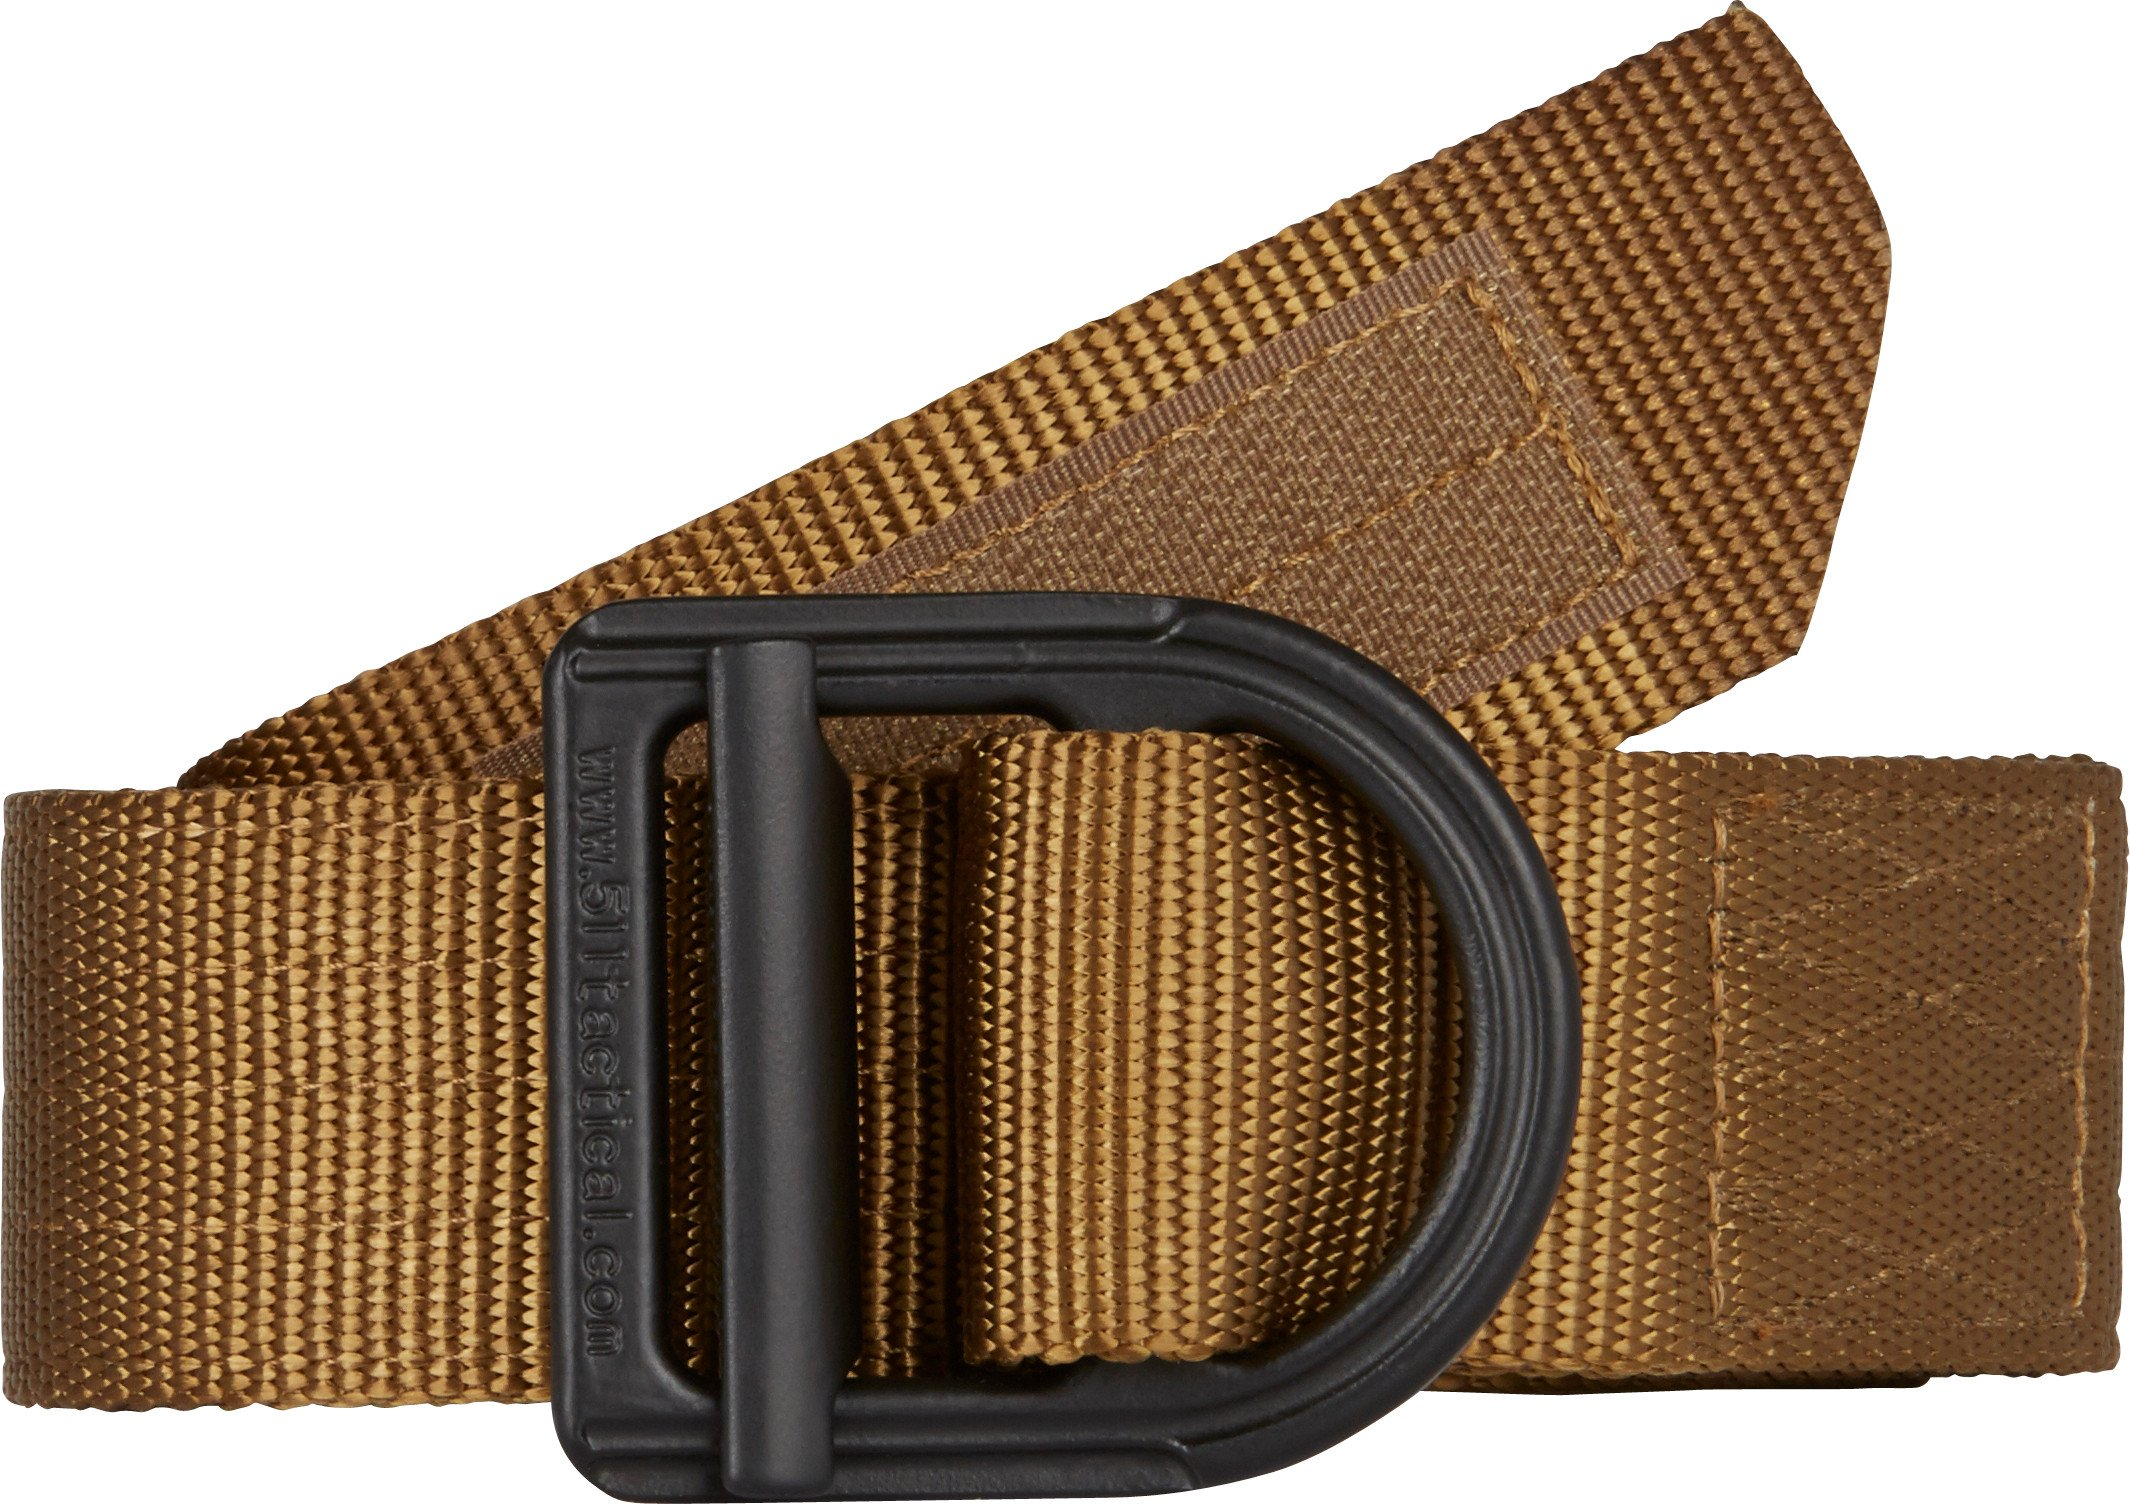 5.11 Tactical EDC Trainer Belt 1 1/2-Inch, Coyote Brown, Small